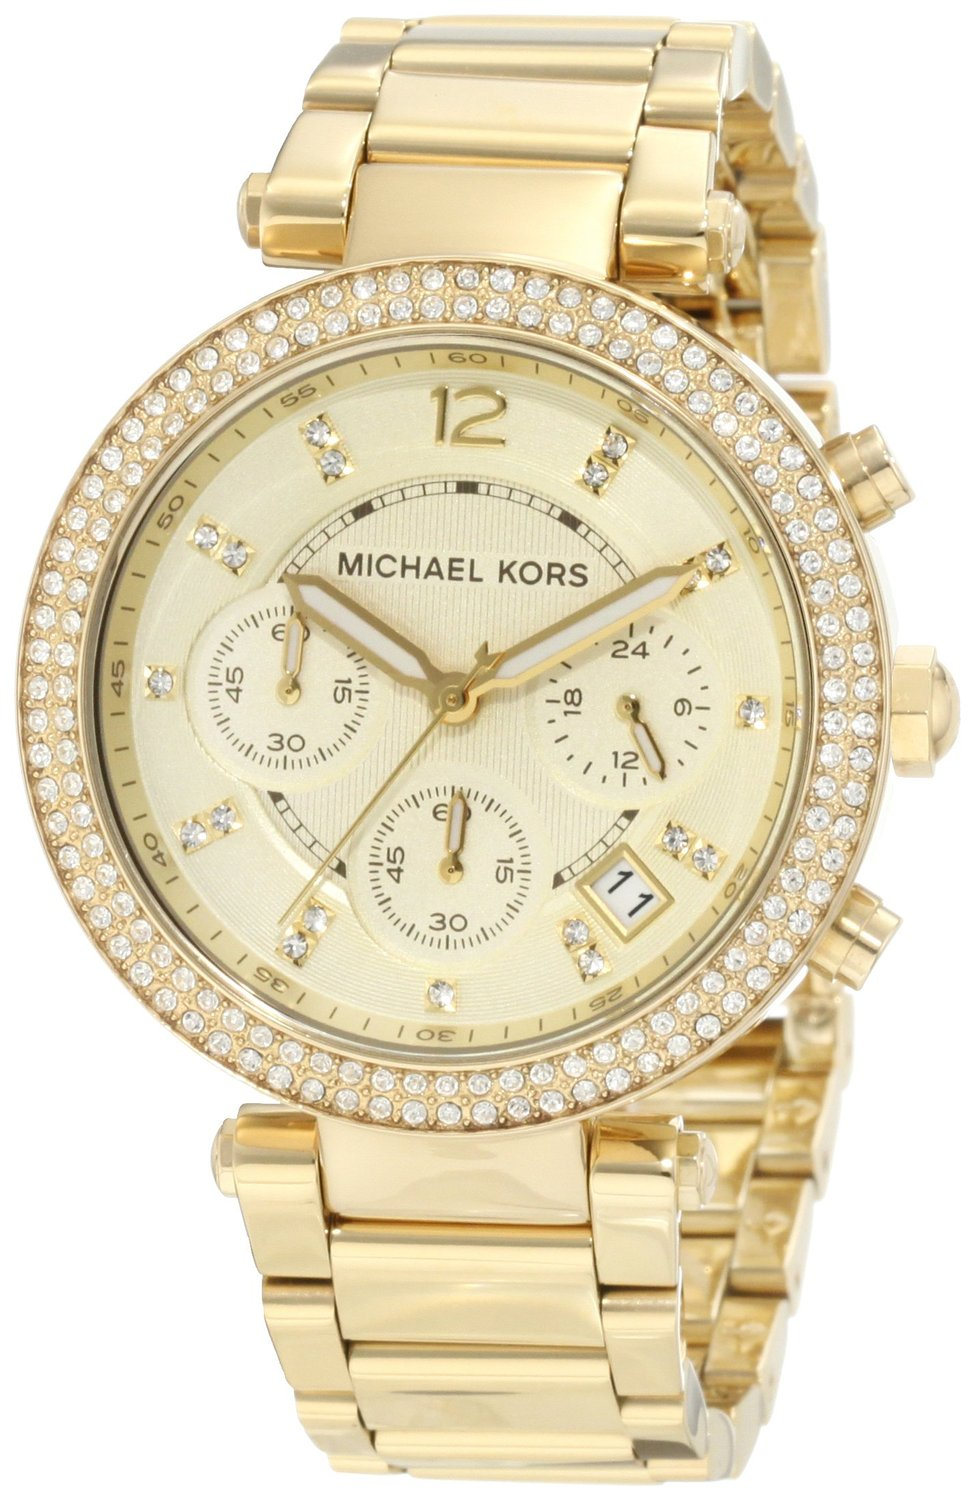 Amazon.com: Michael Kors Women's MK5354 Parker Gold Watch: Michael Kors: Watches